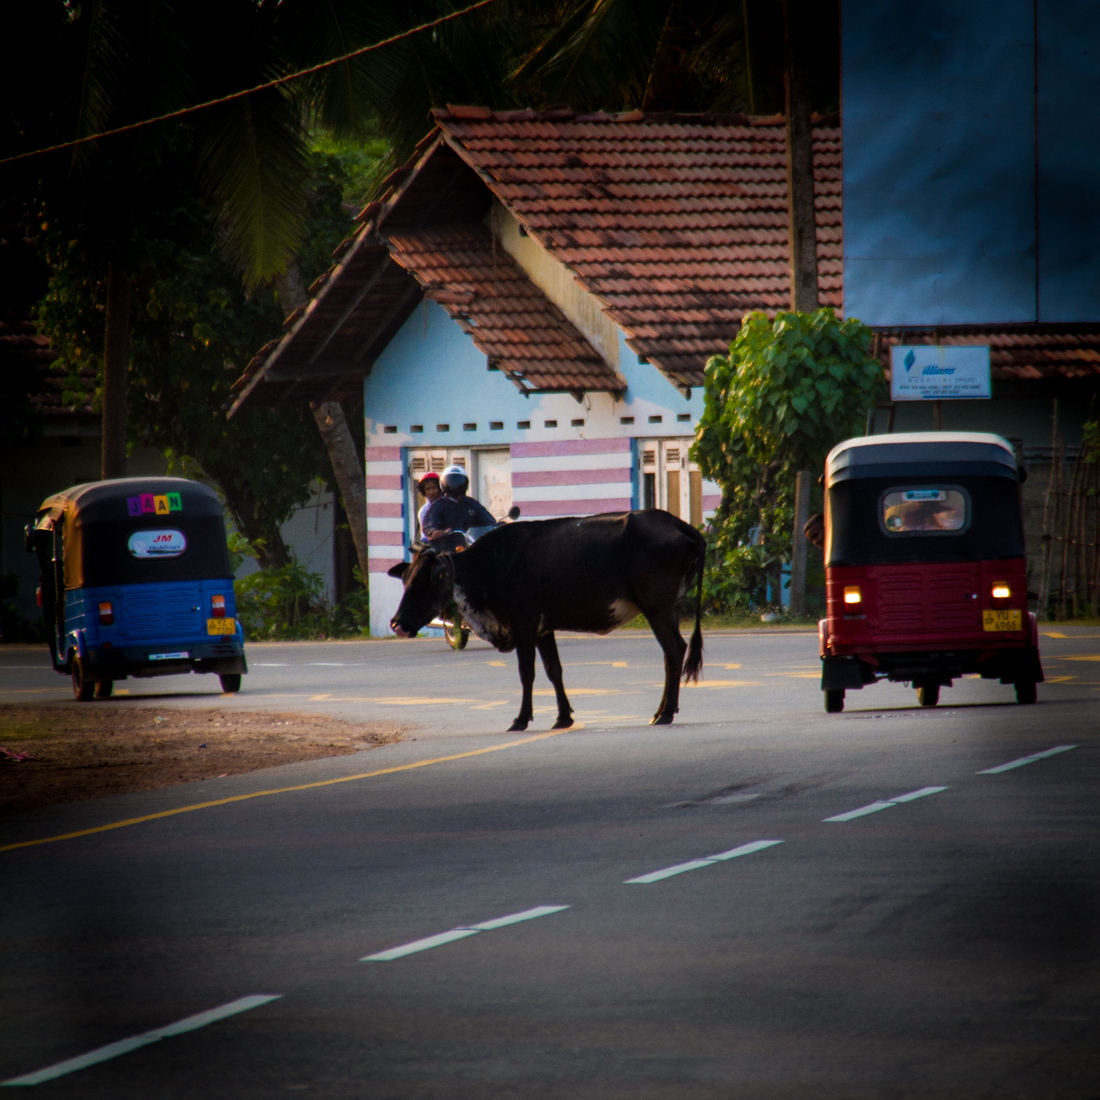 the-sidewalk-secrets-travel-blog-surf-sri-lanka-midigama-mirissa-surfing-sunset-2